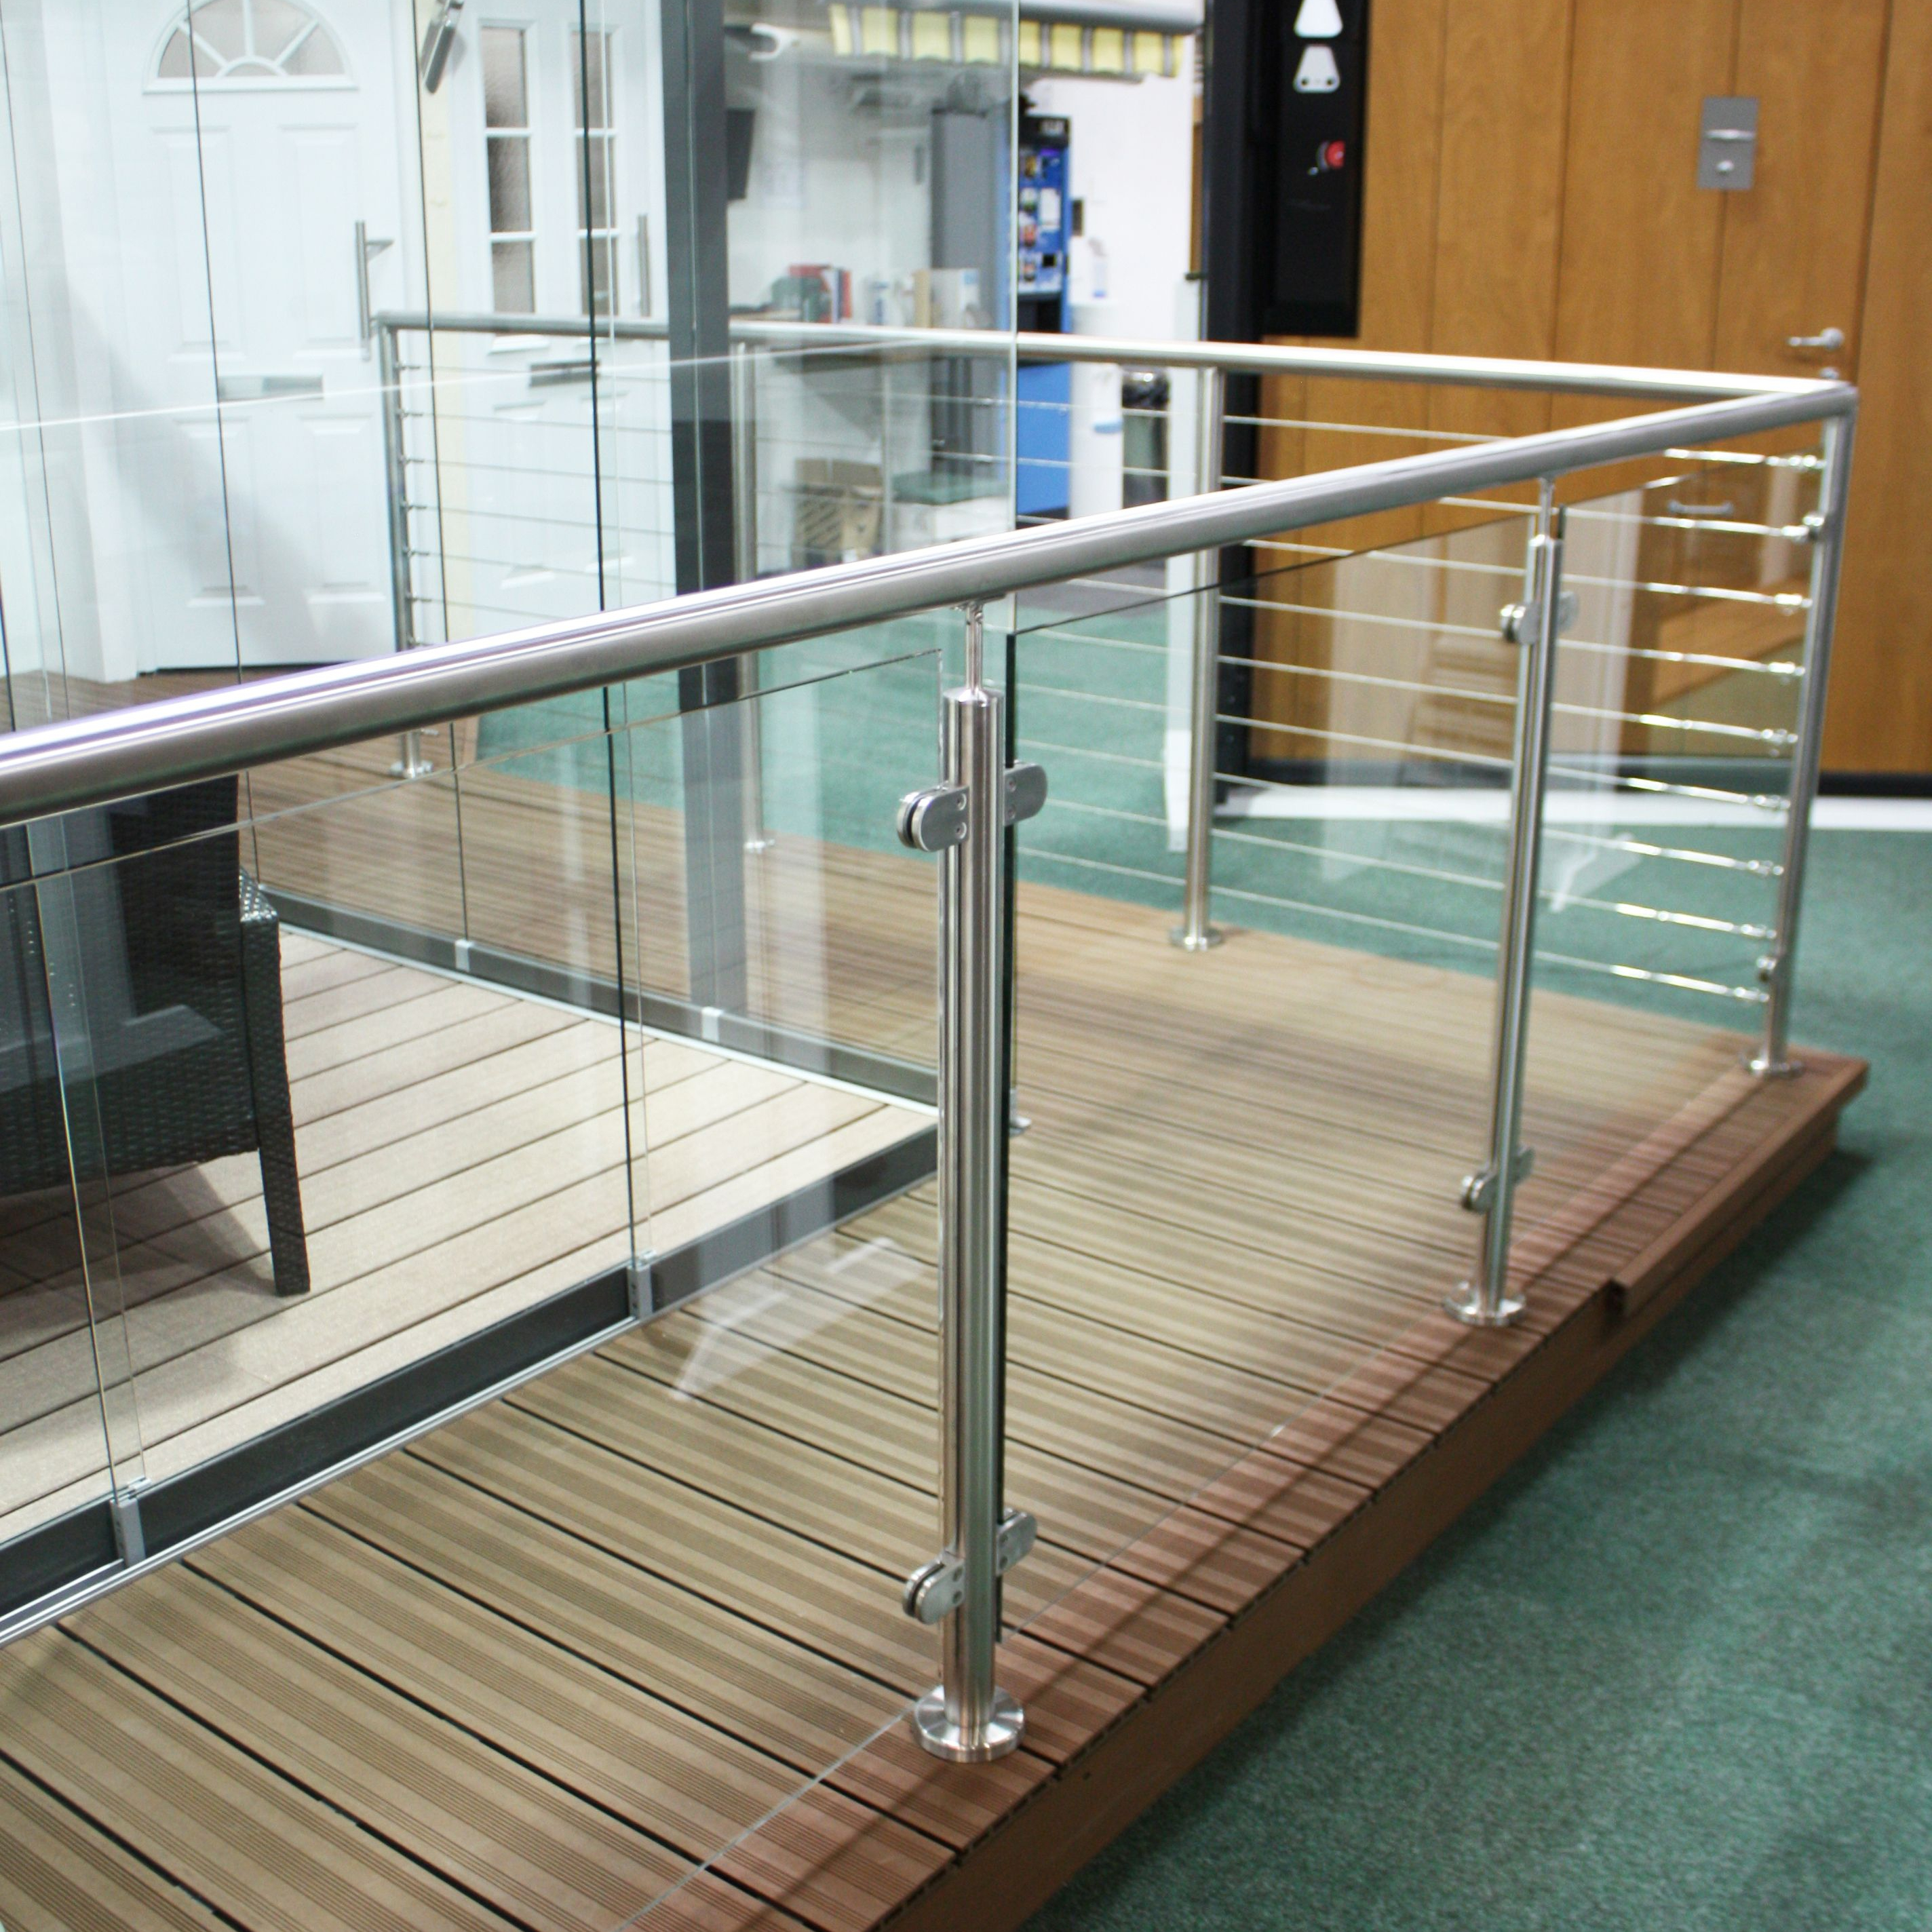 Roof Deck Stainless Steel Staircase Railing Designs Buy Staircase Railing Designs Deck Railing Railing Design Product On Alibaba Com